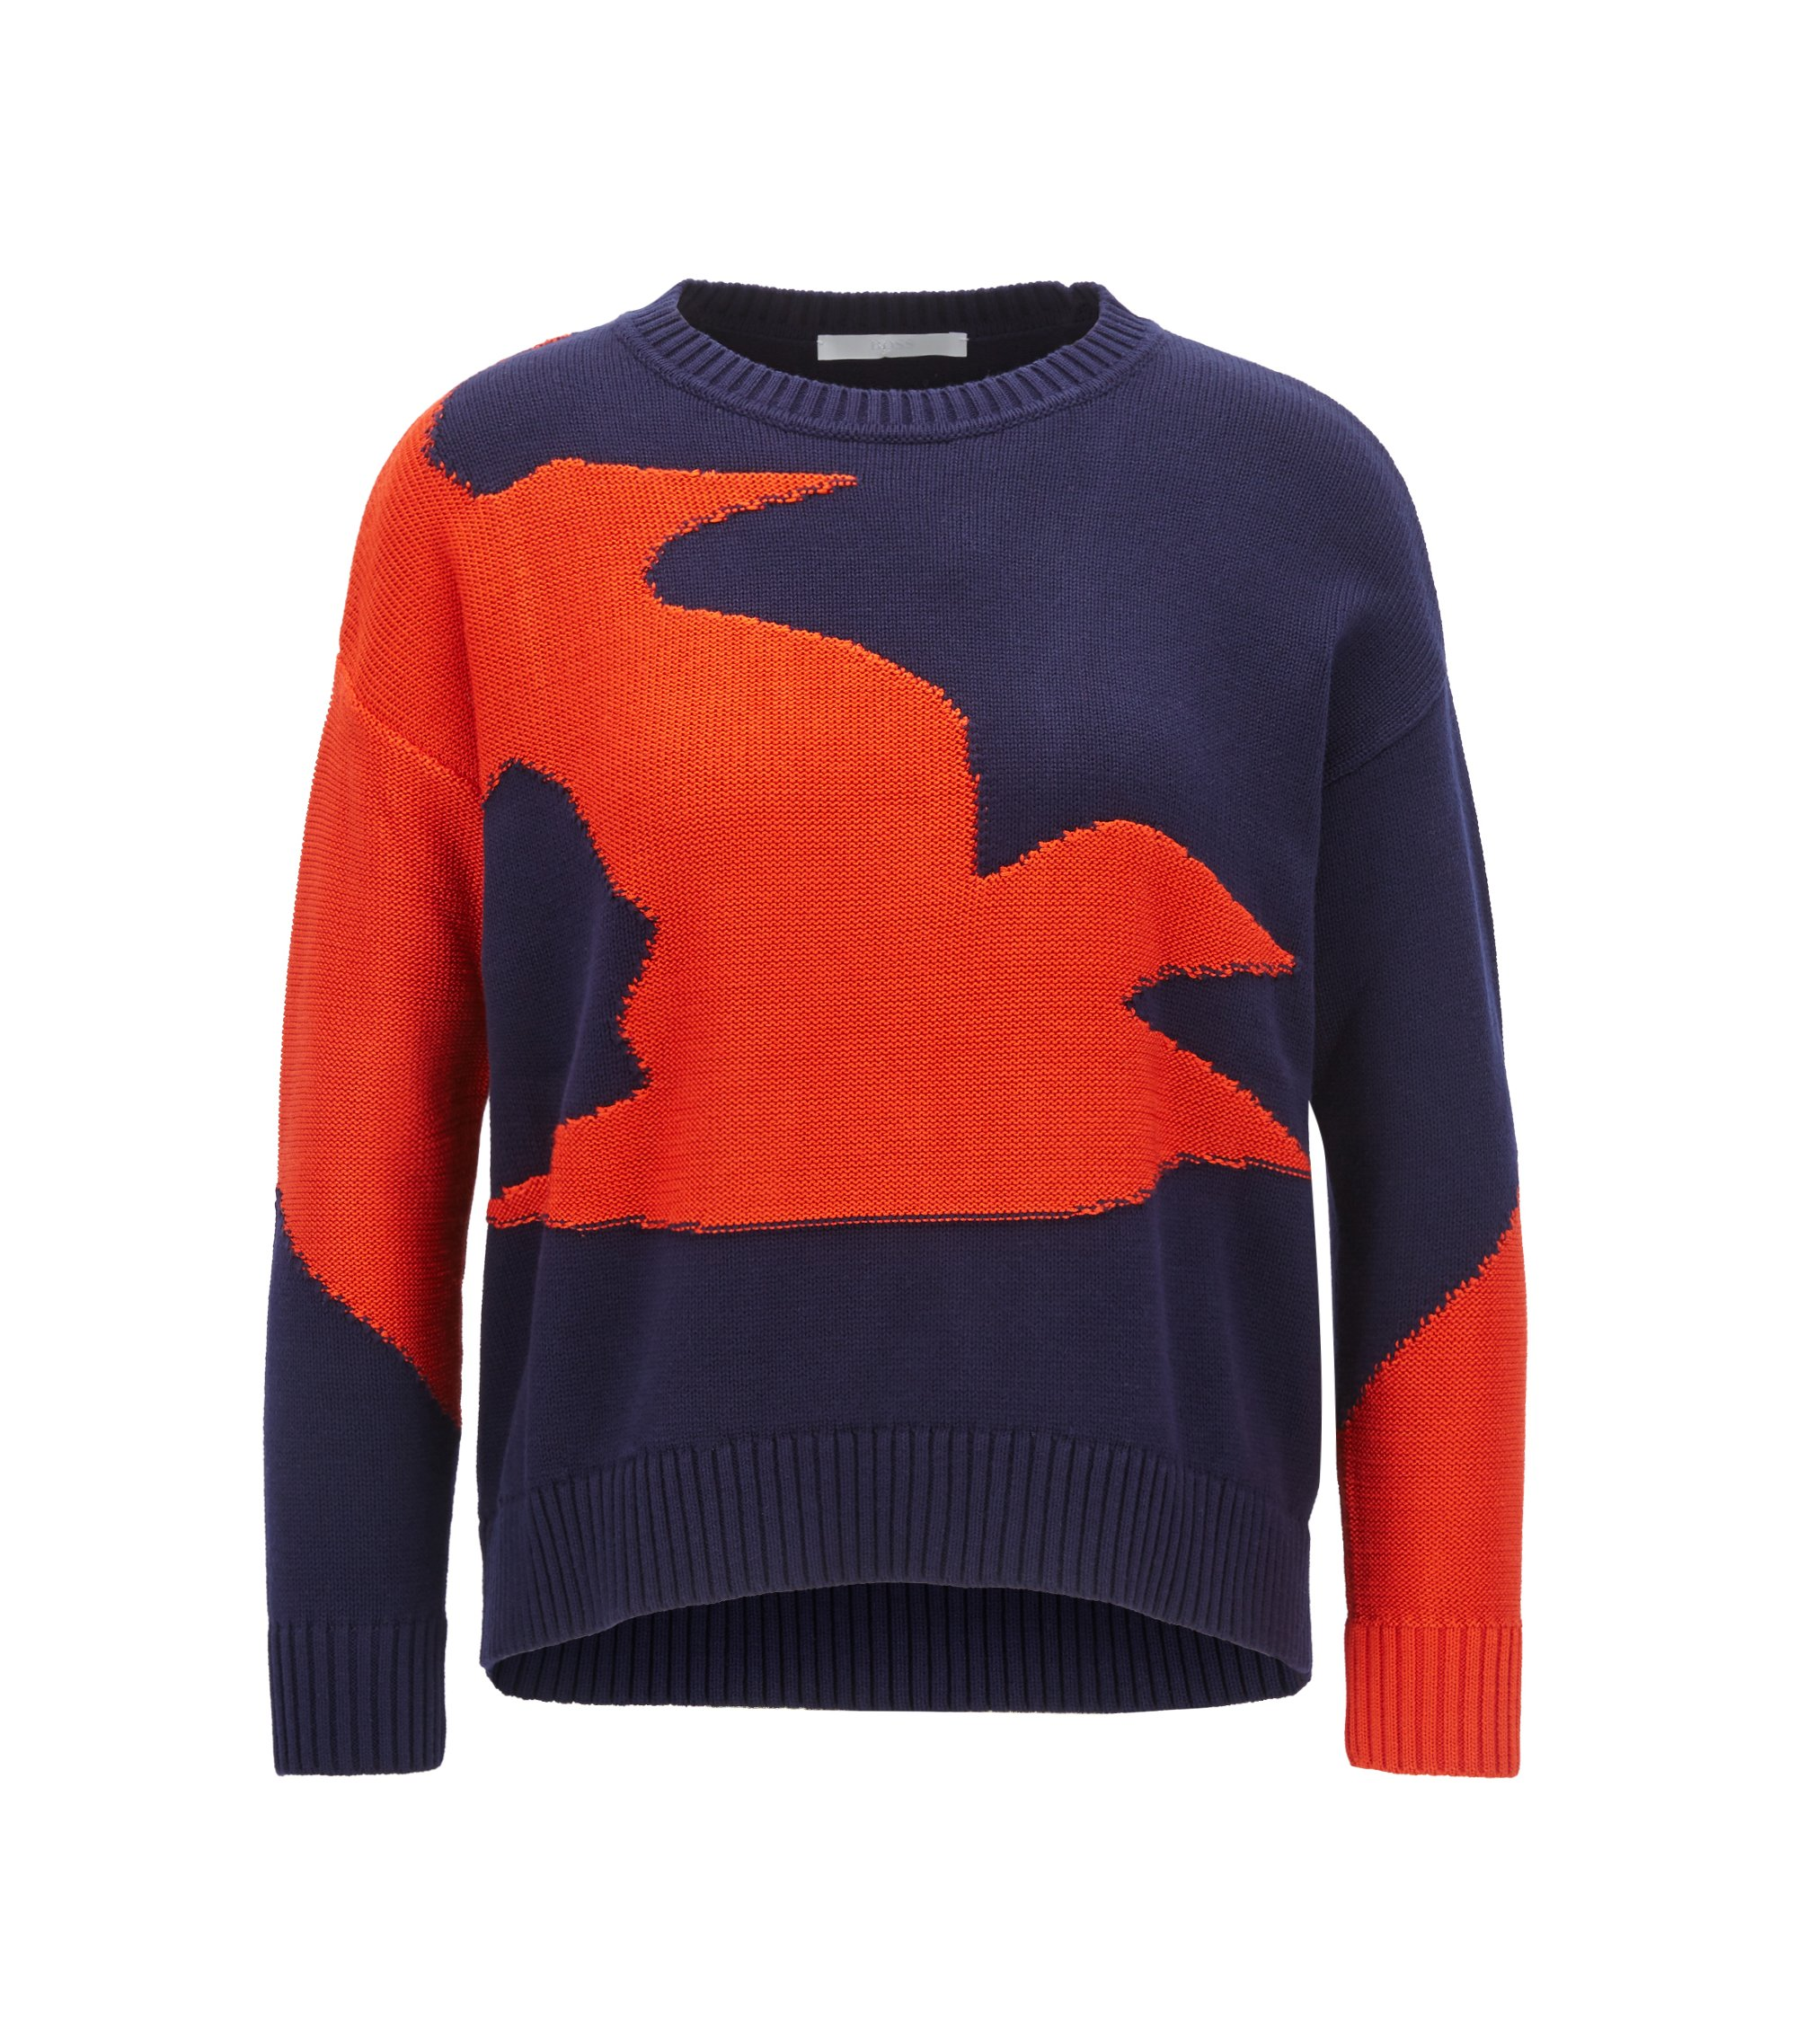 Bird Intarsia Sweater | Fabby, Patterned